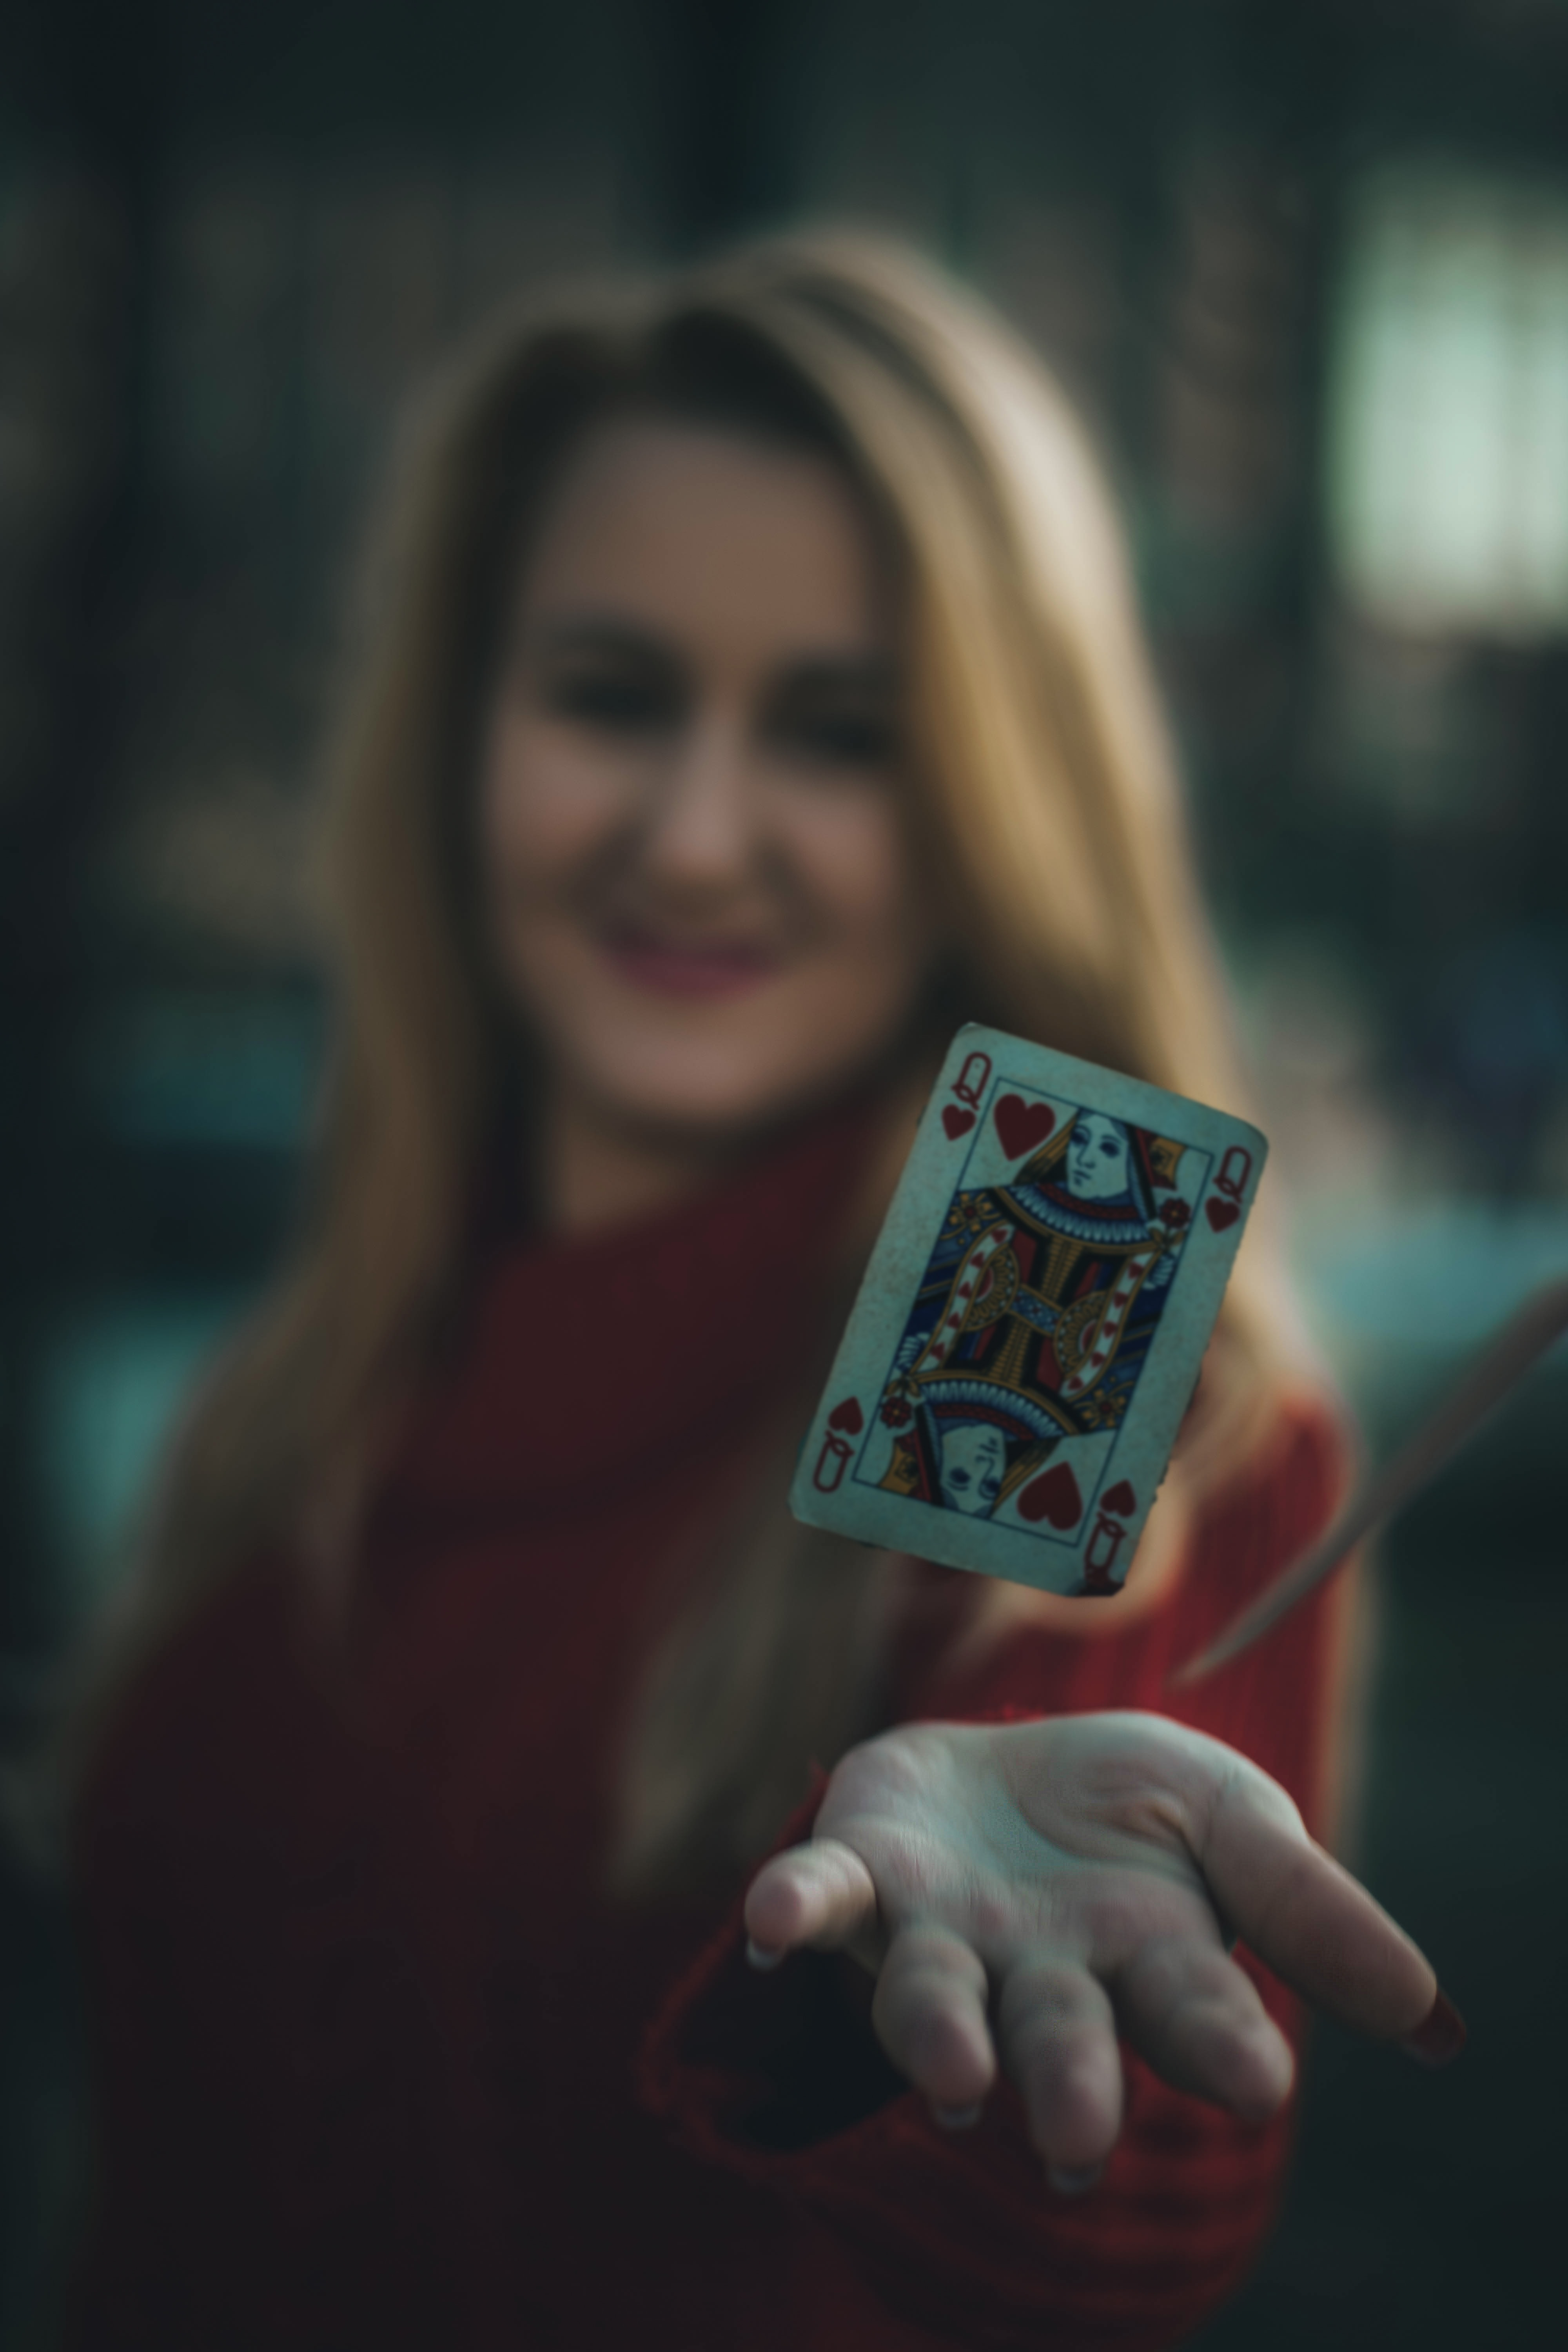 time lapse photo of queen of hearts playing card near woman's palm